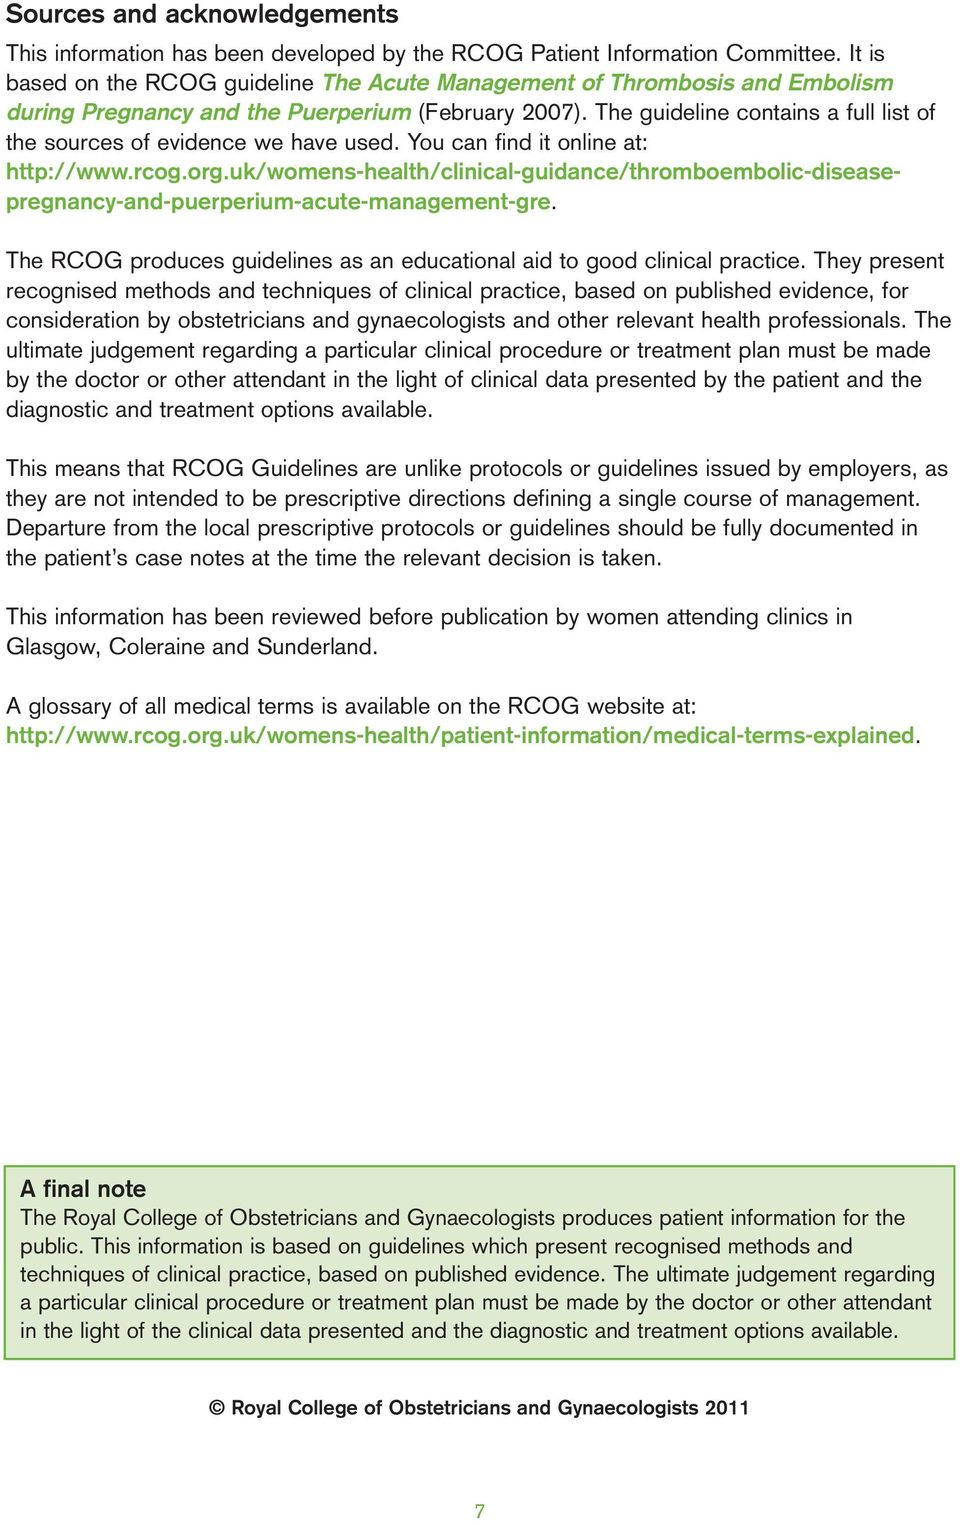 The guideline contains a full list of the sources of evidence we have used. You can find it online at: http://www.rcog.org.